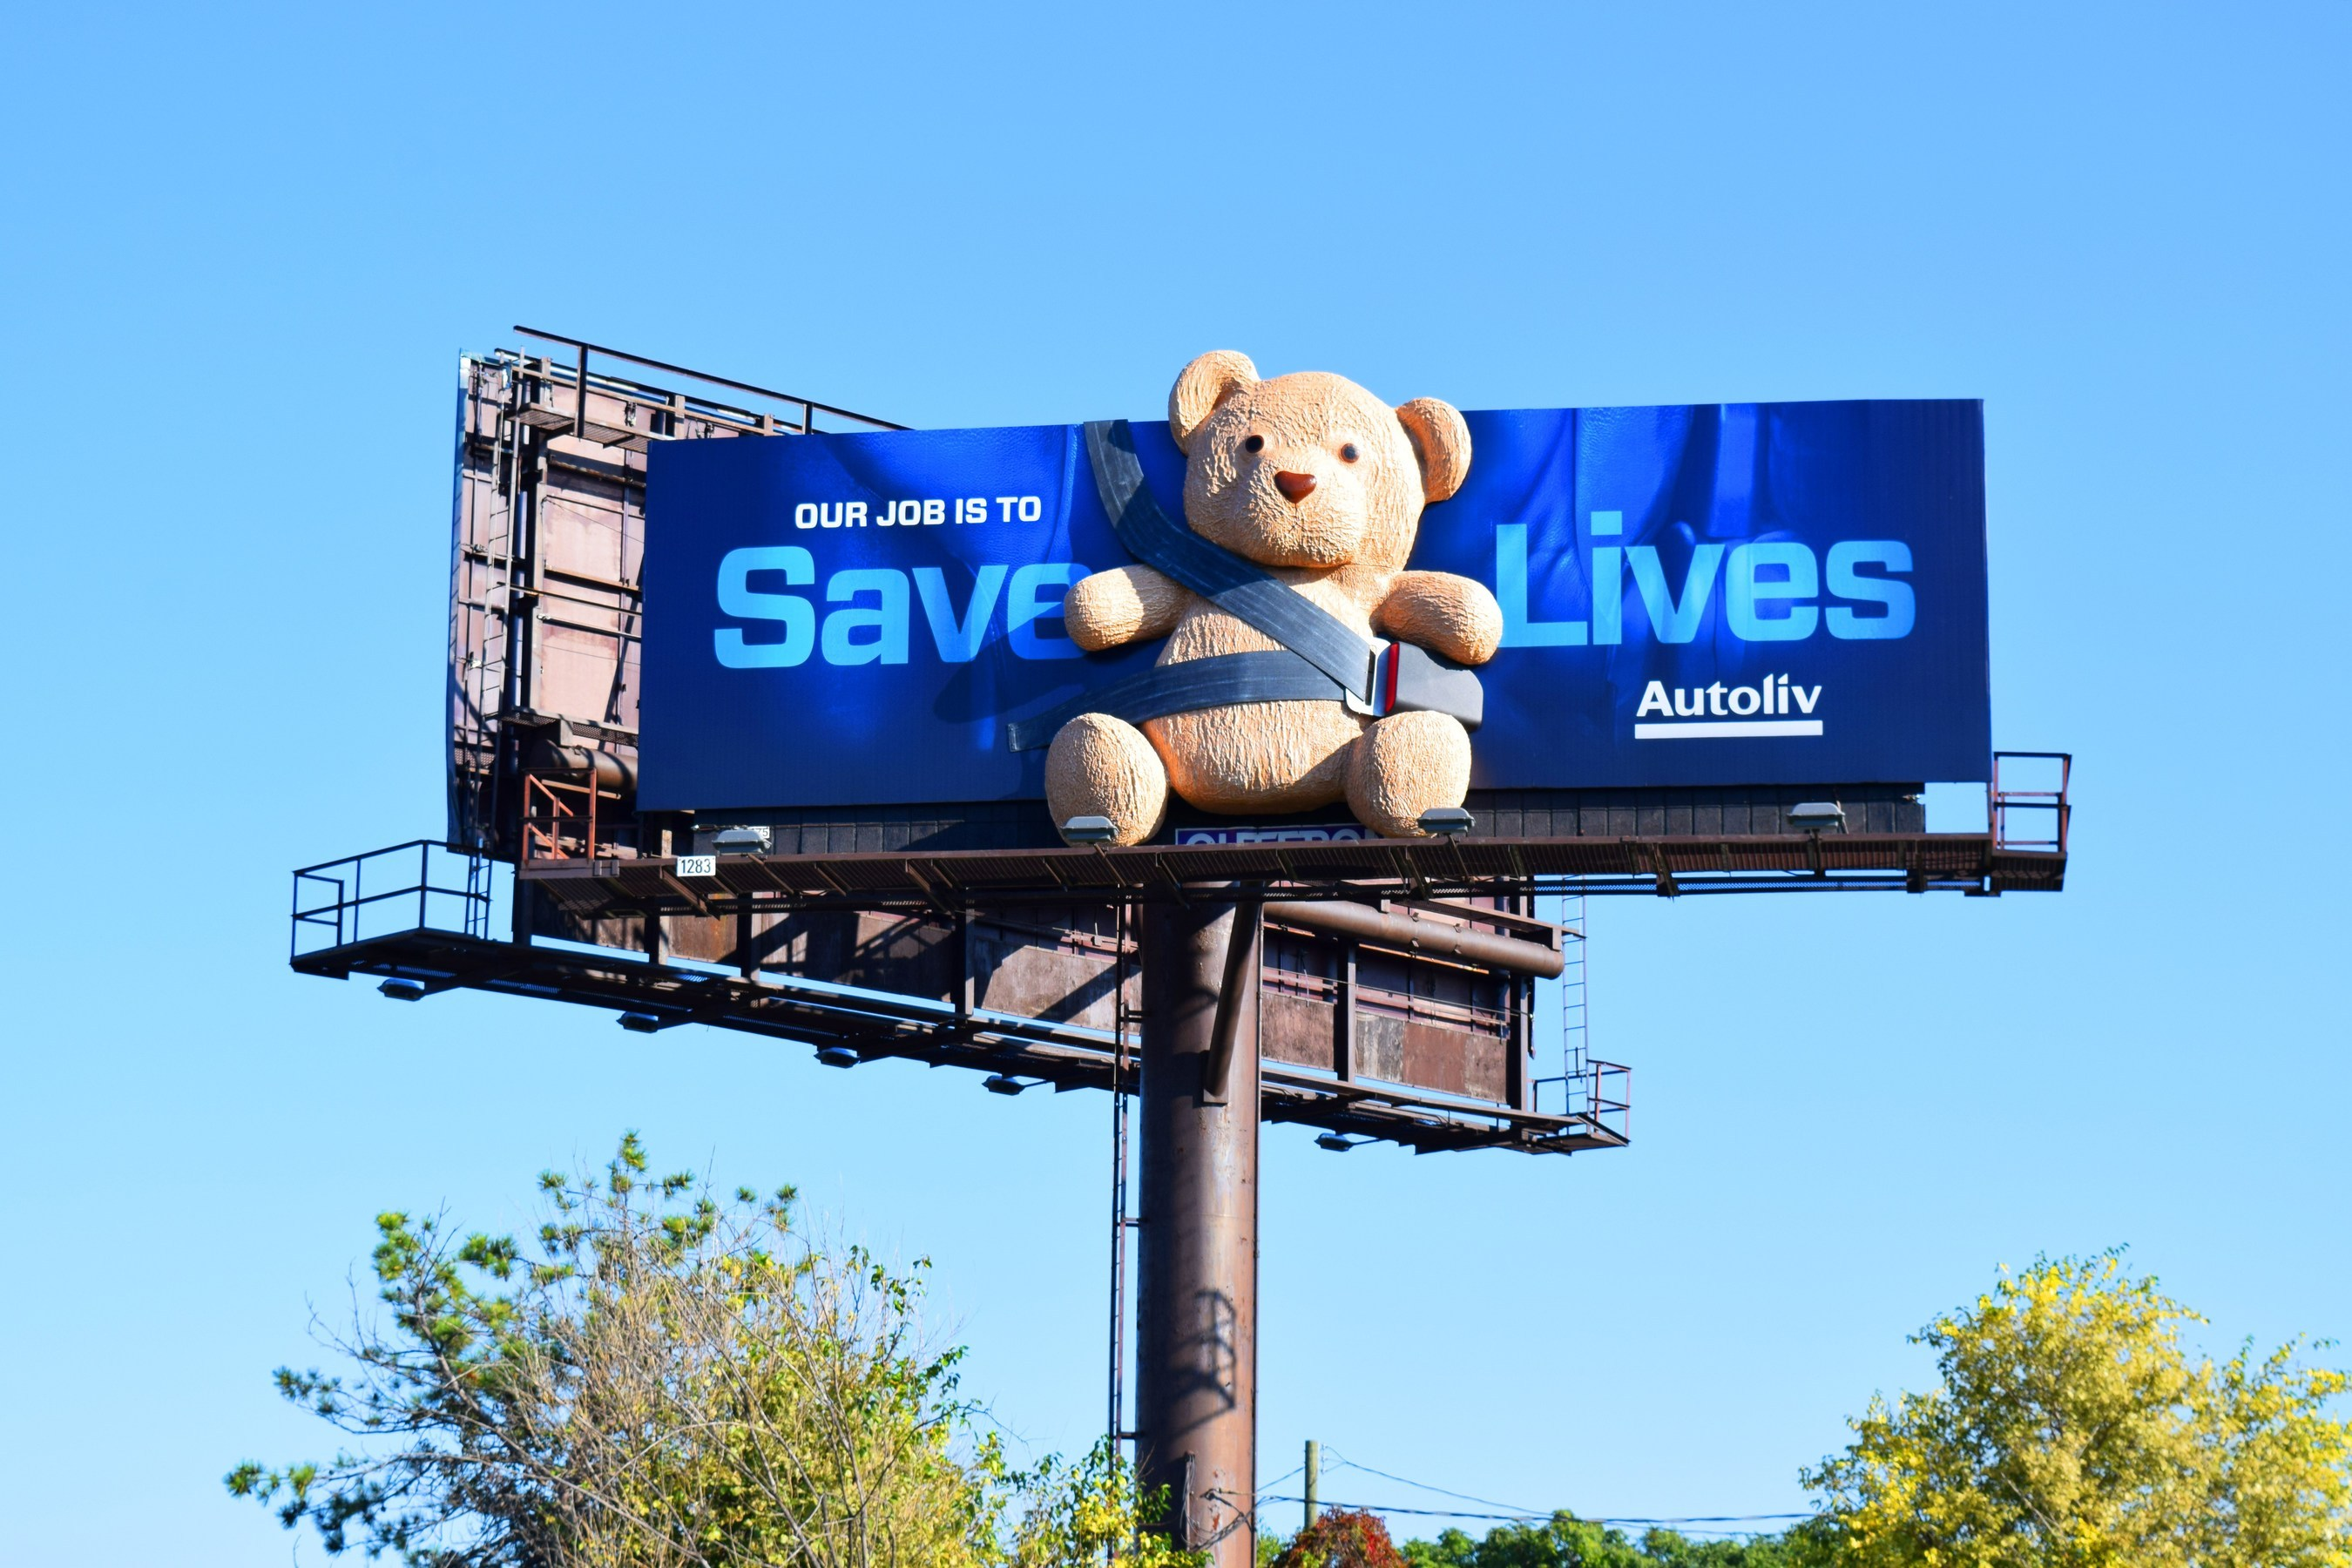 Autoliv Highlights Safety with Billboard Campaign Featuring Teddy Bear